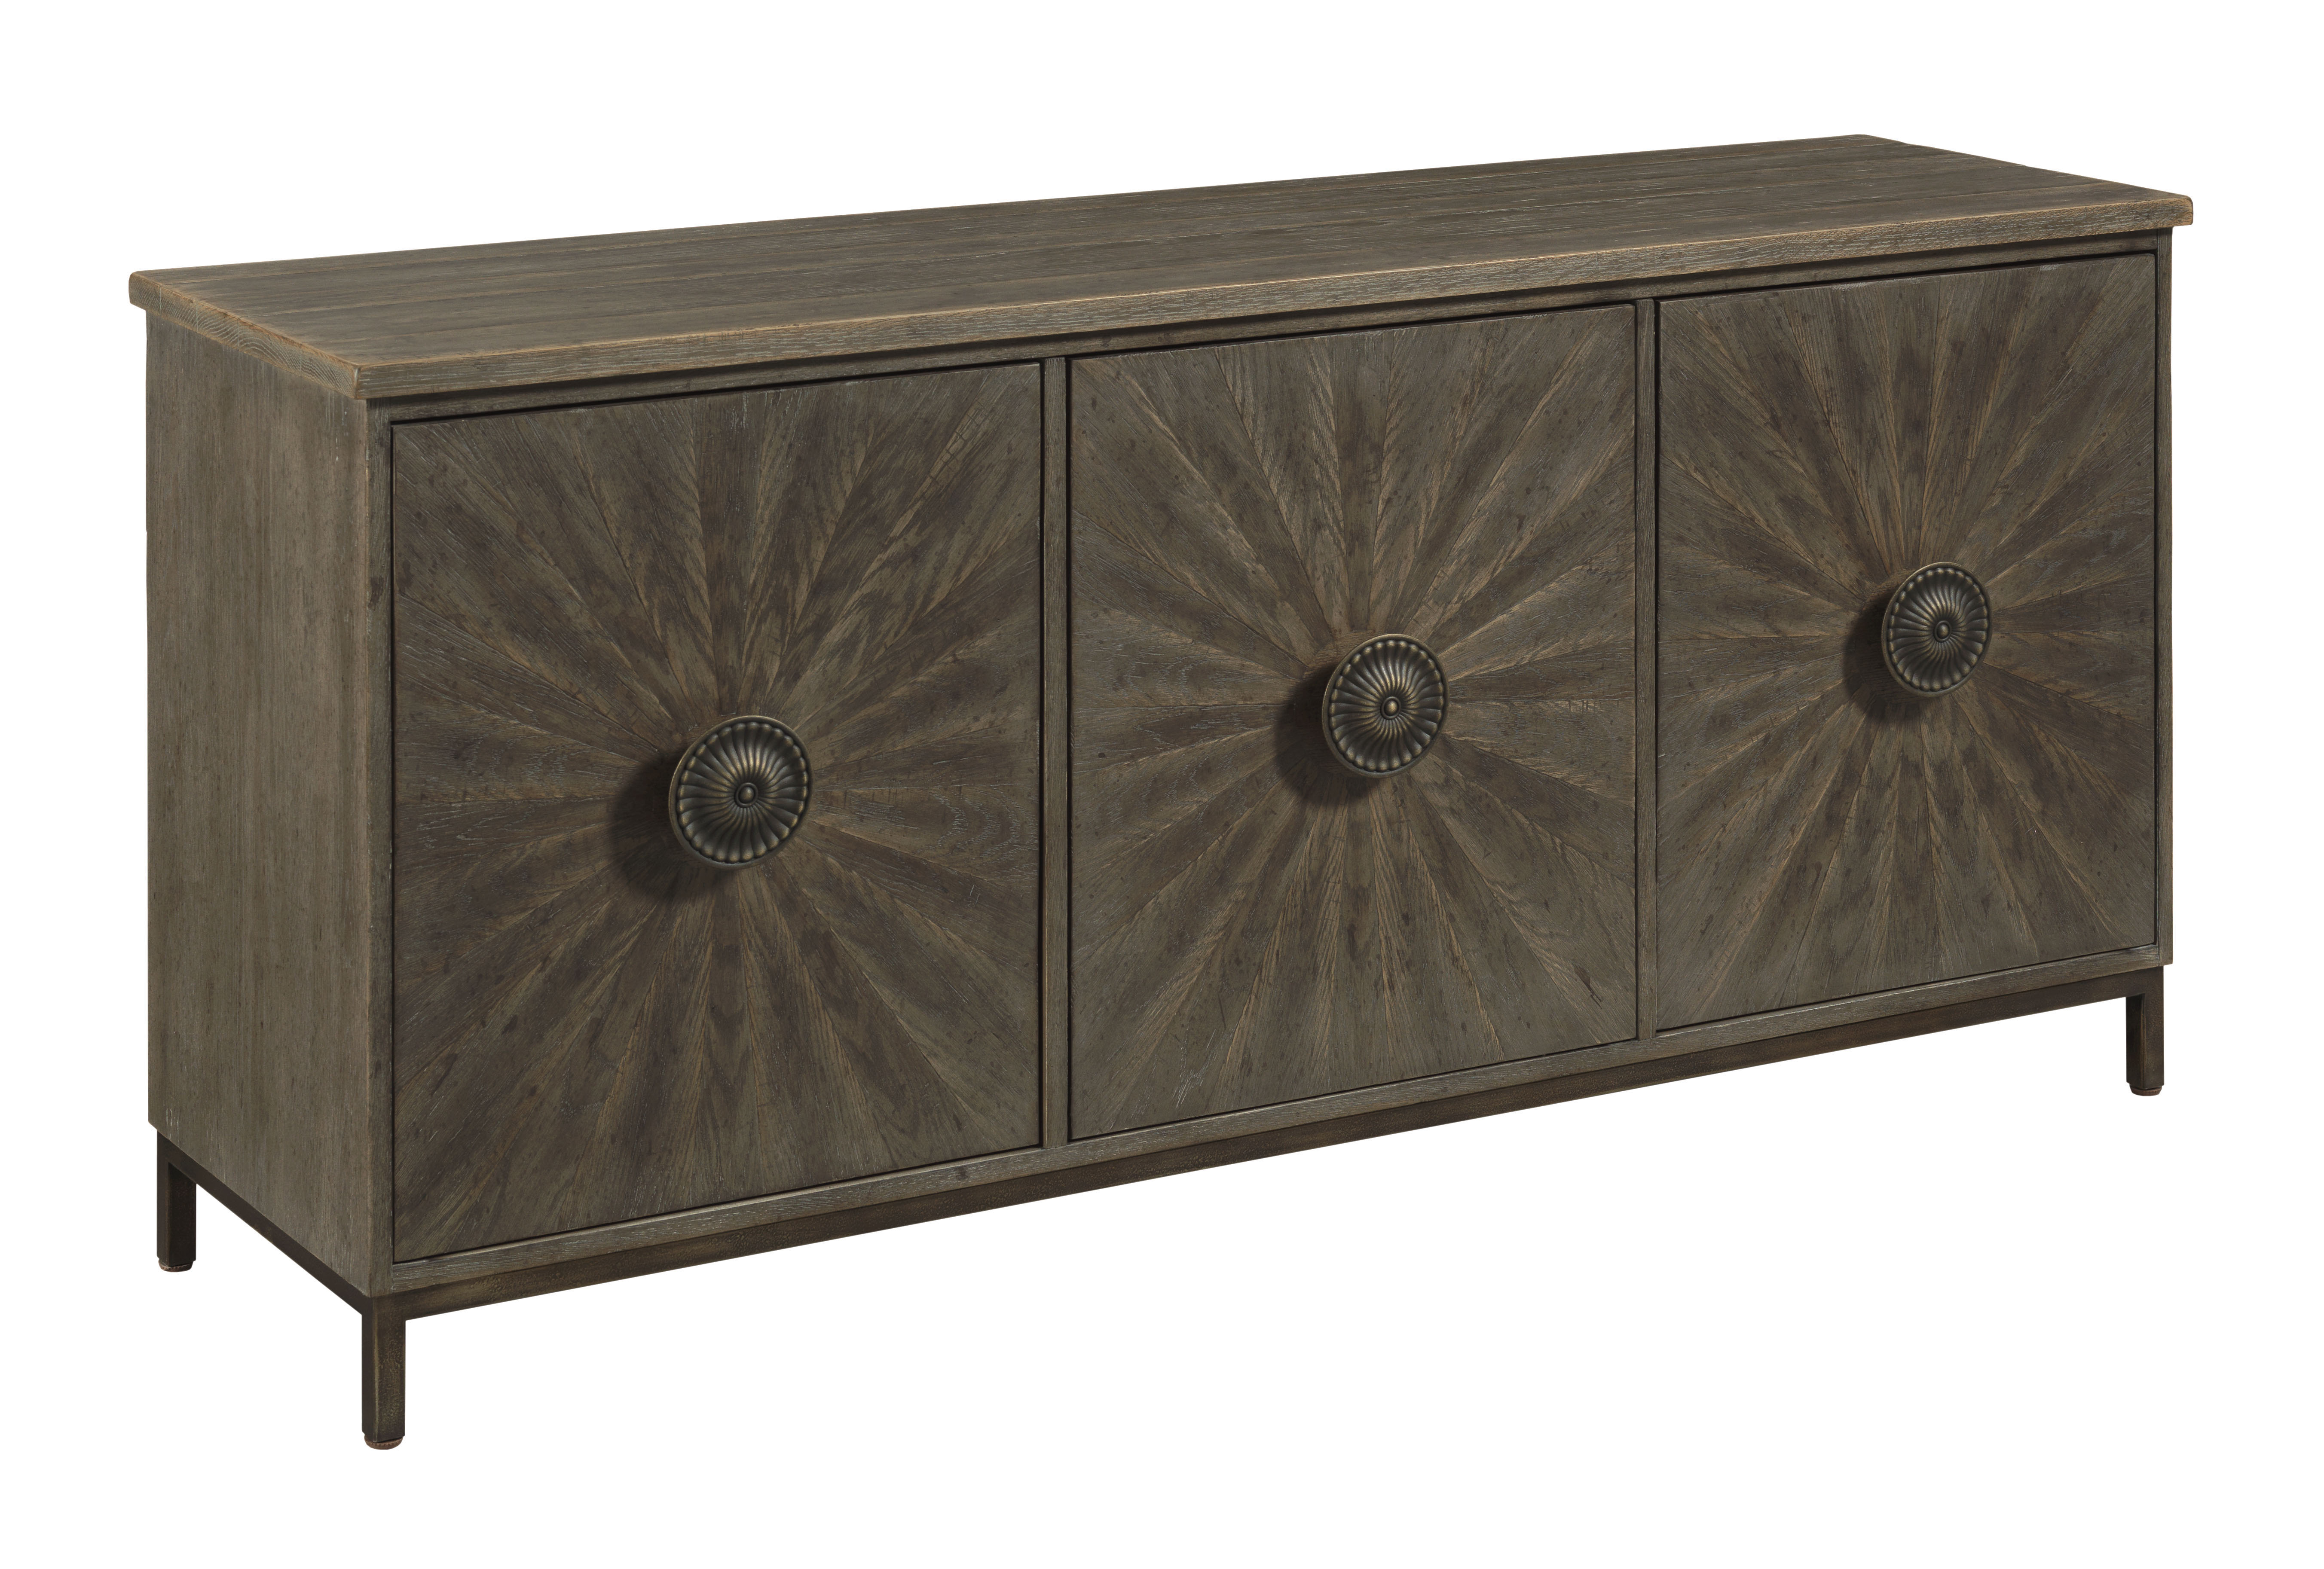 Emporium Entertainment Console by American Drew at Story & Lee Furniture